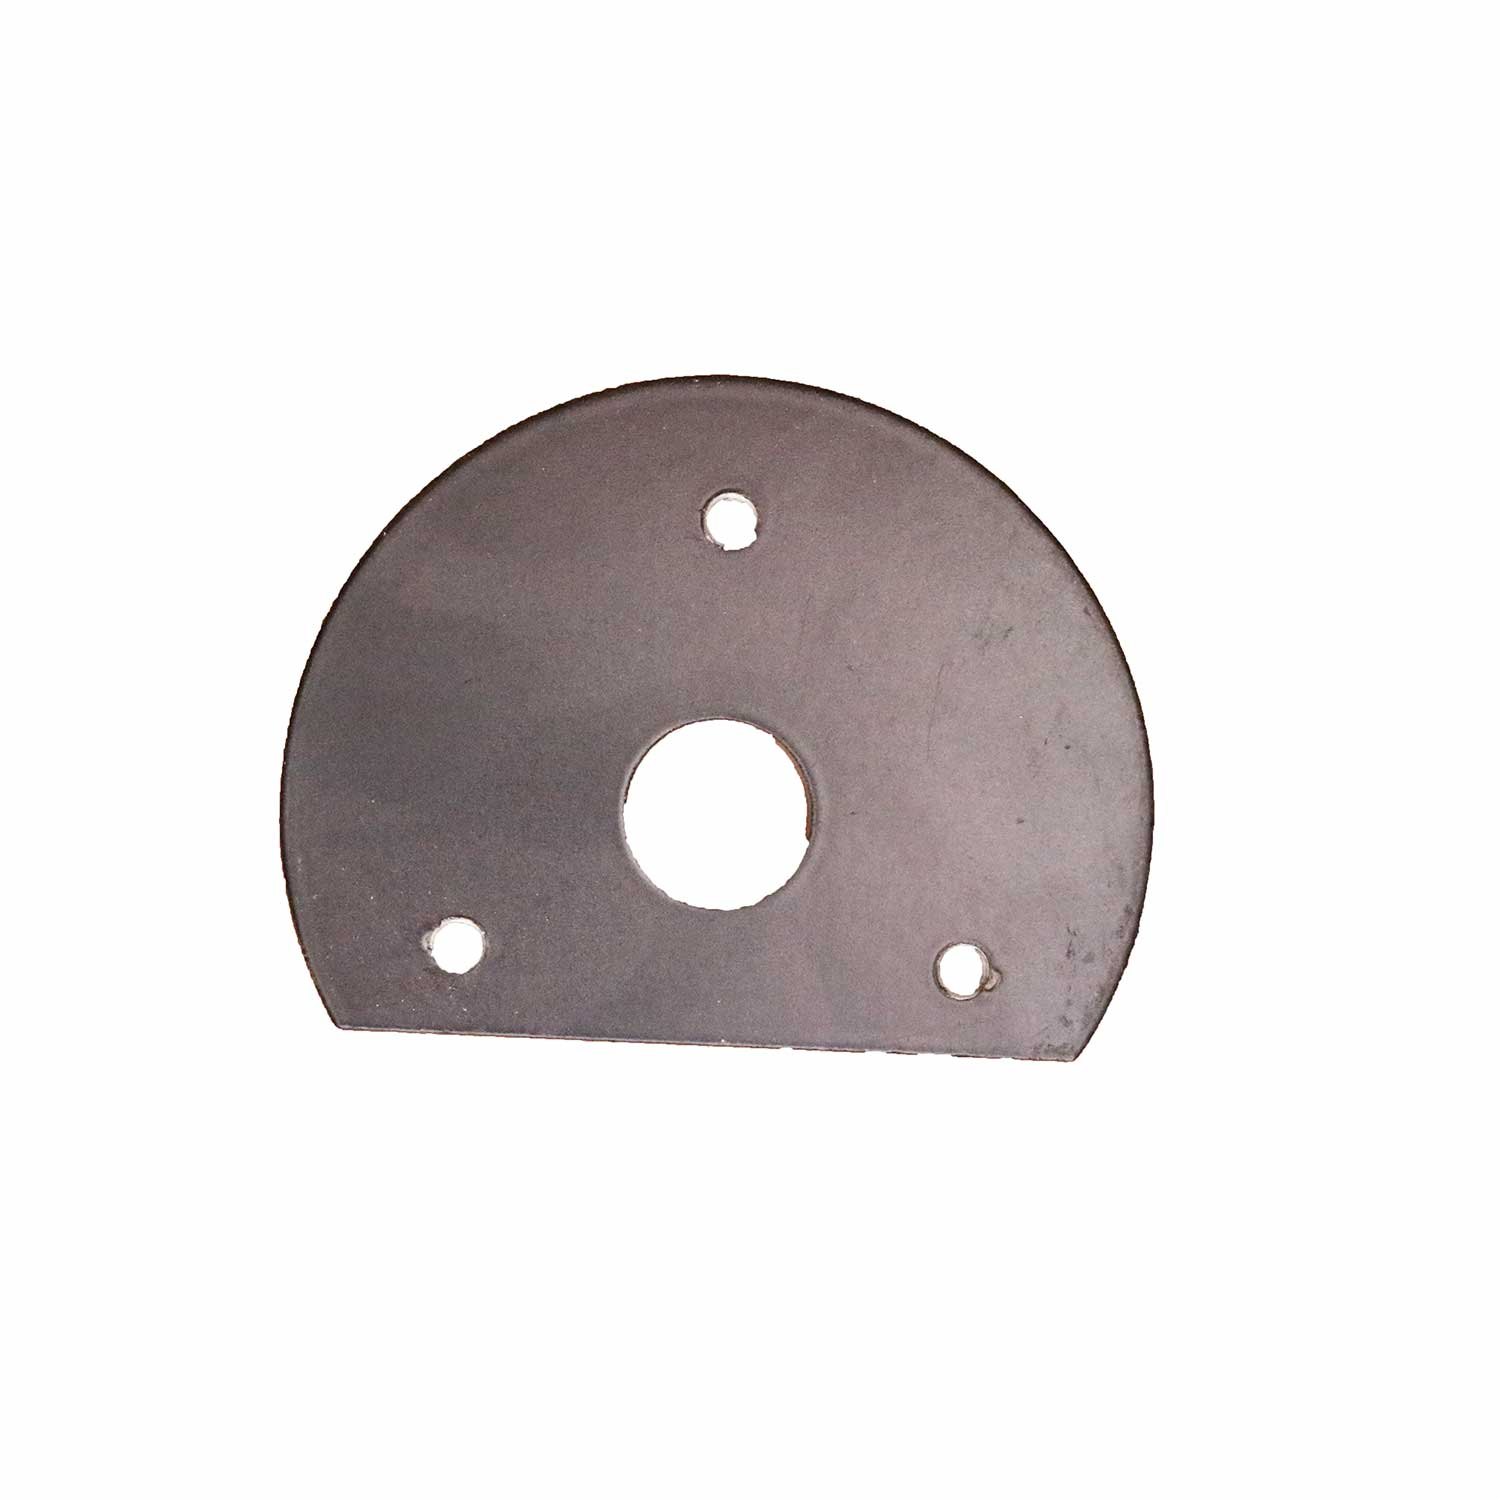 Ejector Rod Plate with Threads